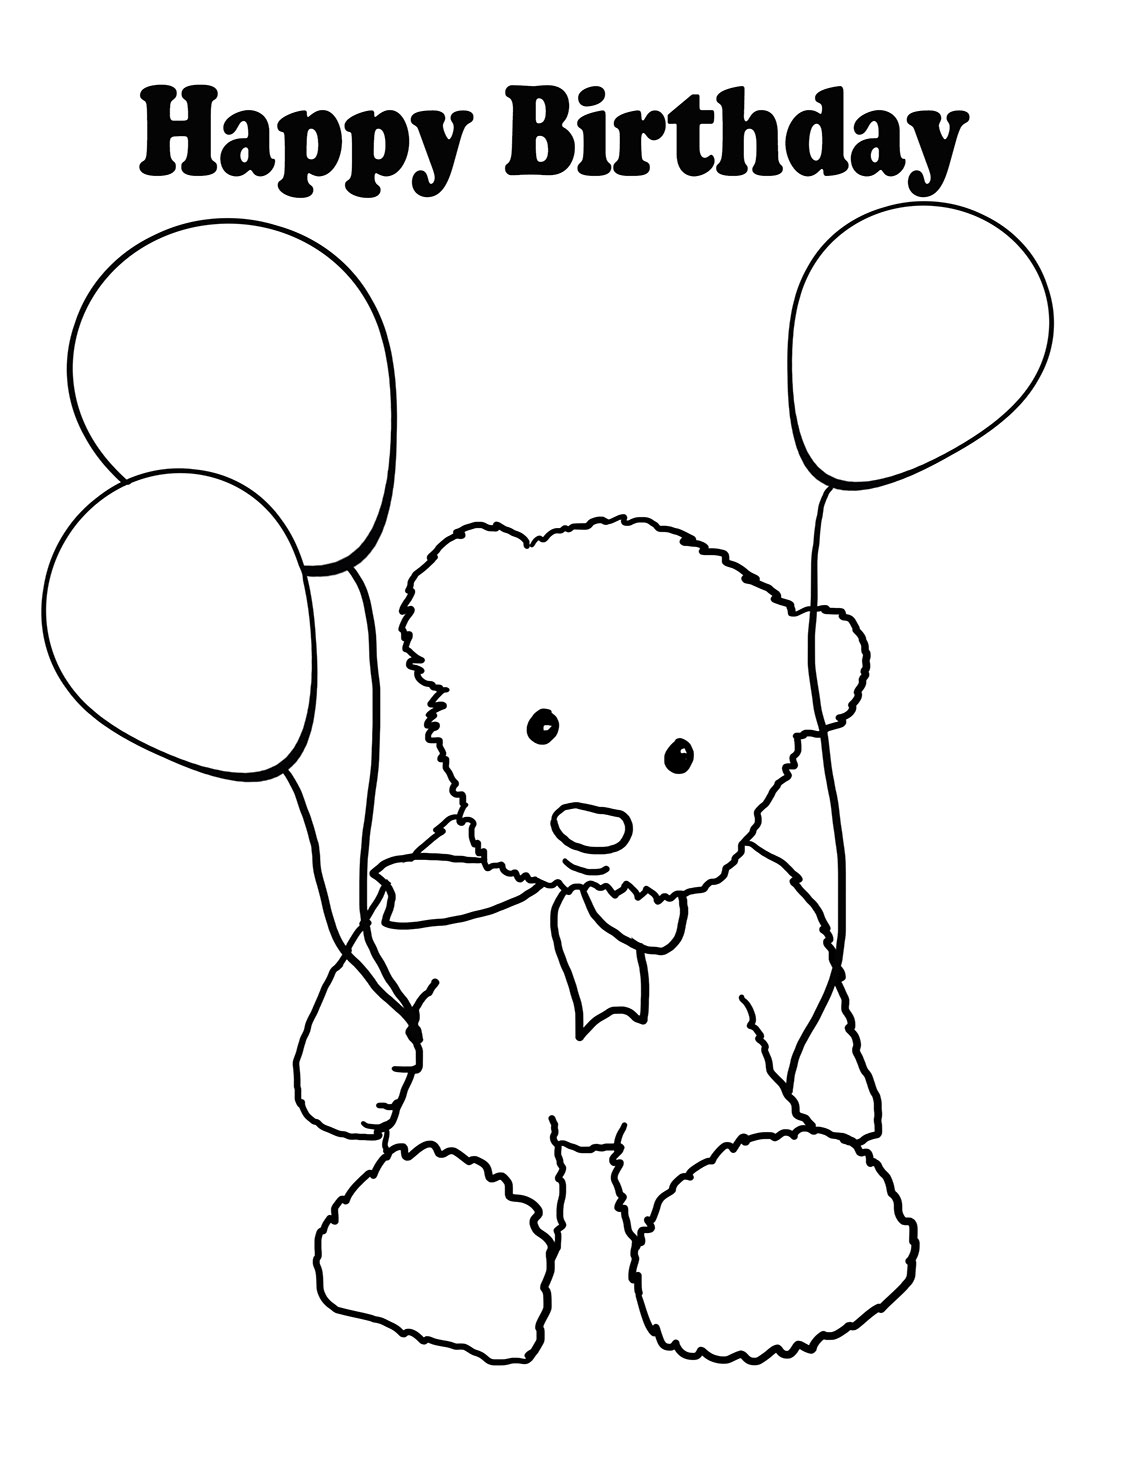 happy birthday drawing easy ; birthday-coloring-teddy-bear-balloons